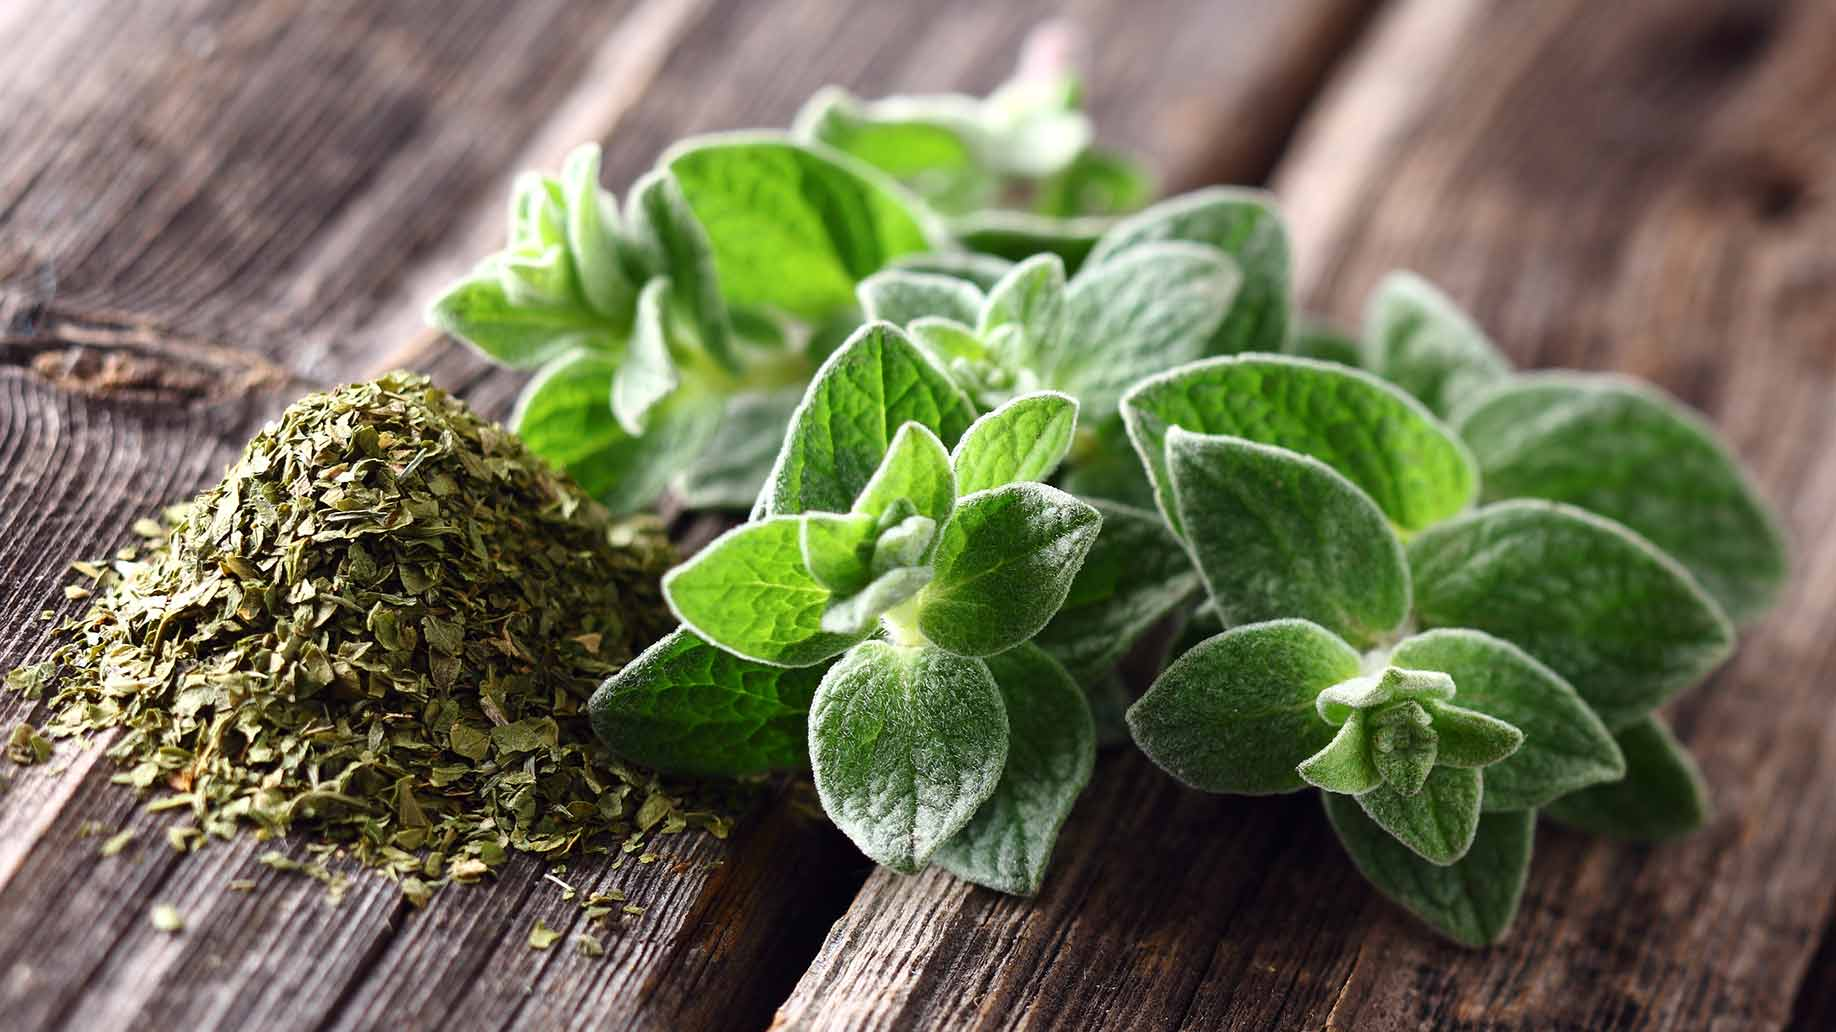 oregano essential oil herb leaves natural health remedies antibacterial antifungal food poisoning cold cough flu